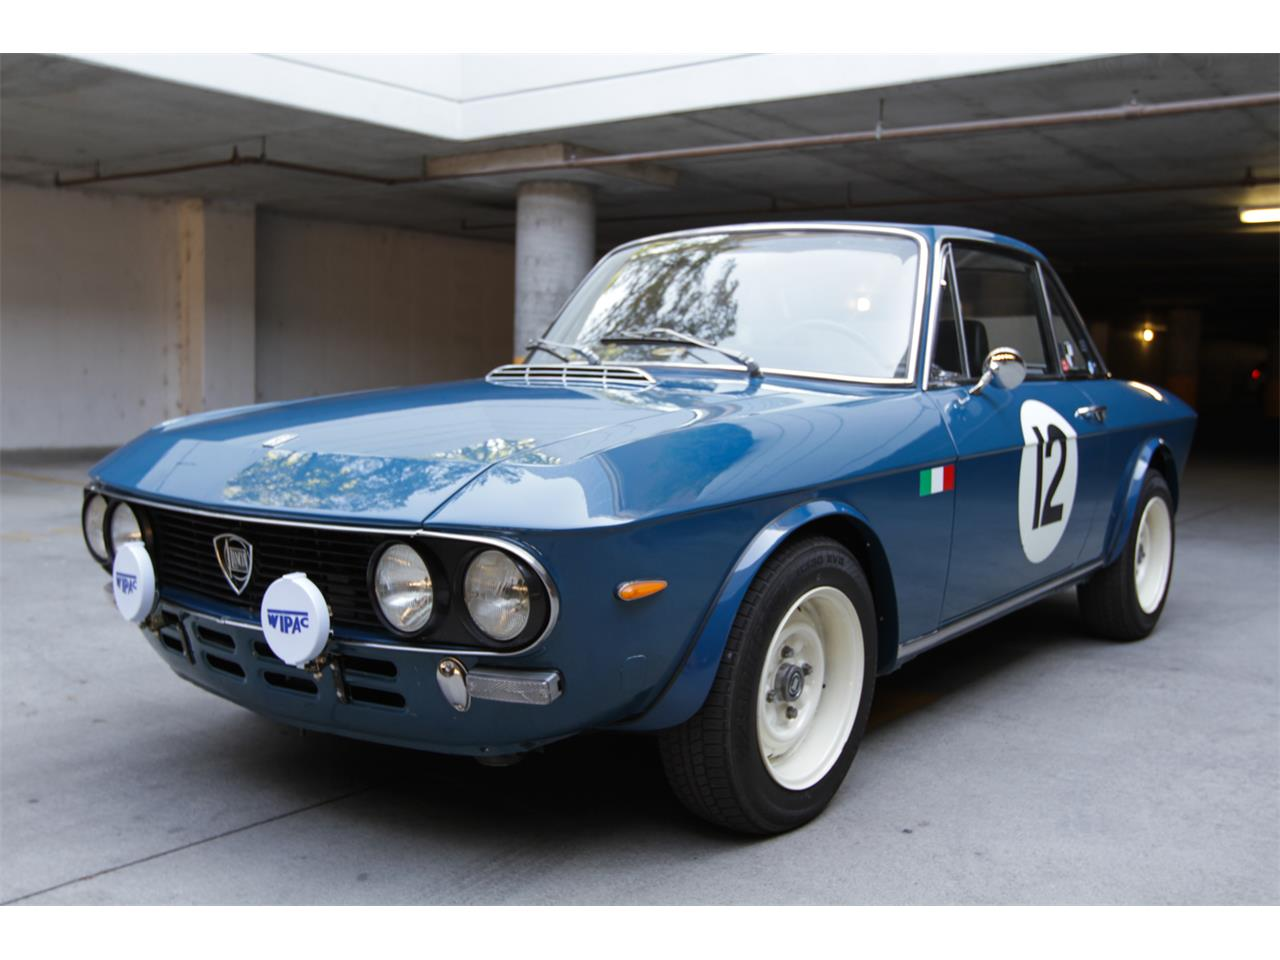 Large Picture of '75 Fulvia located in Idaho - $35,000.00 - OHR3